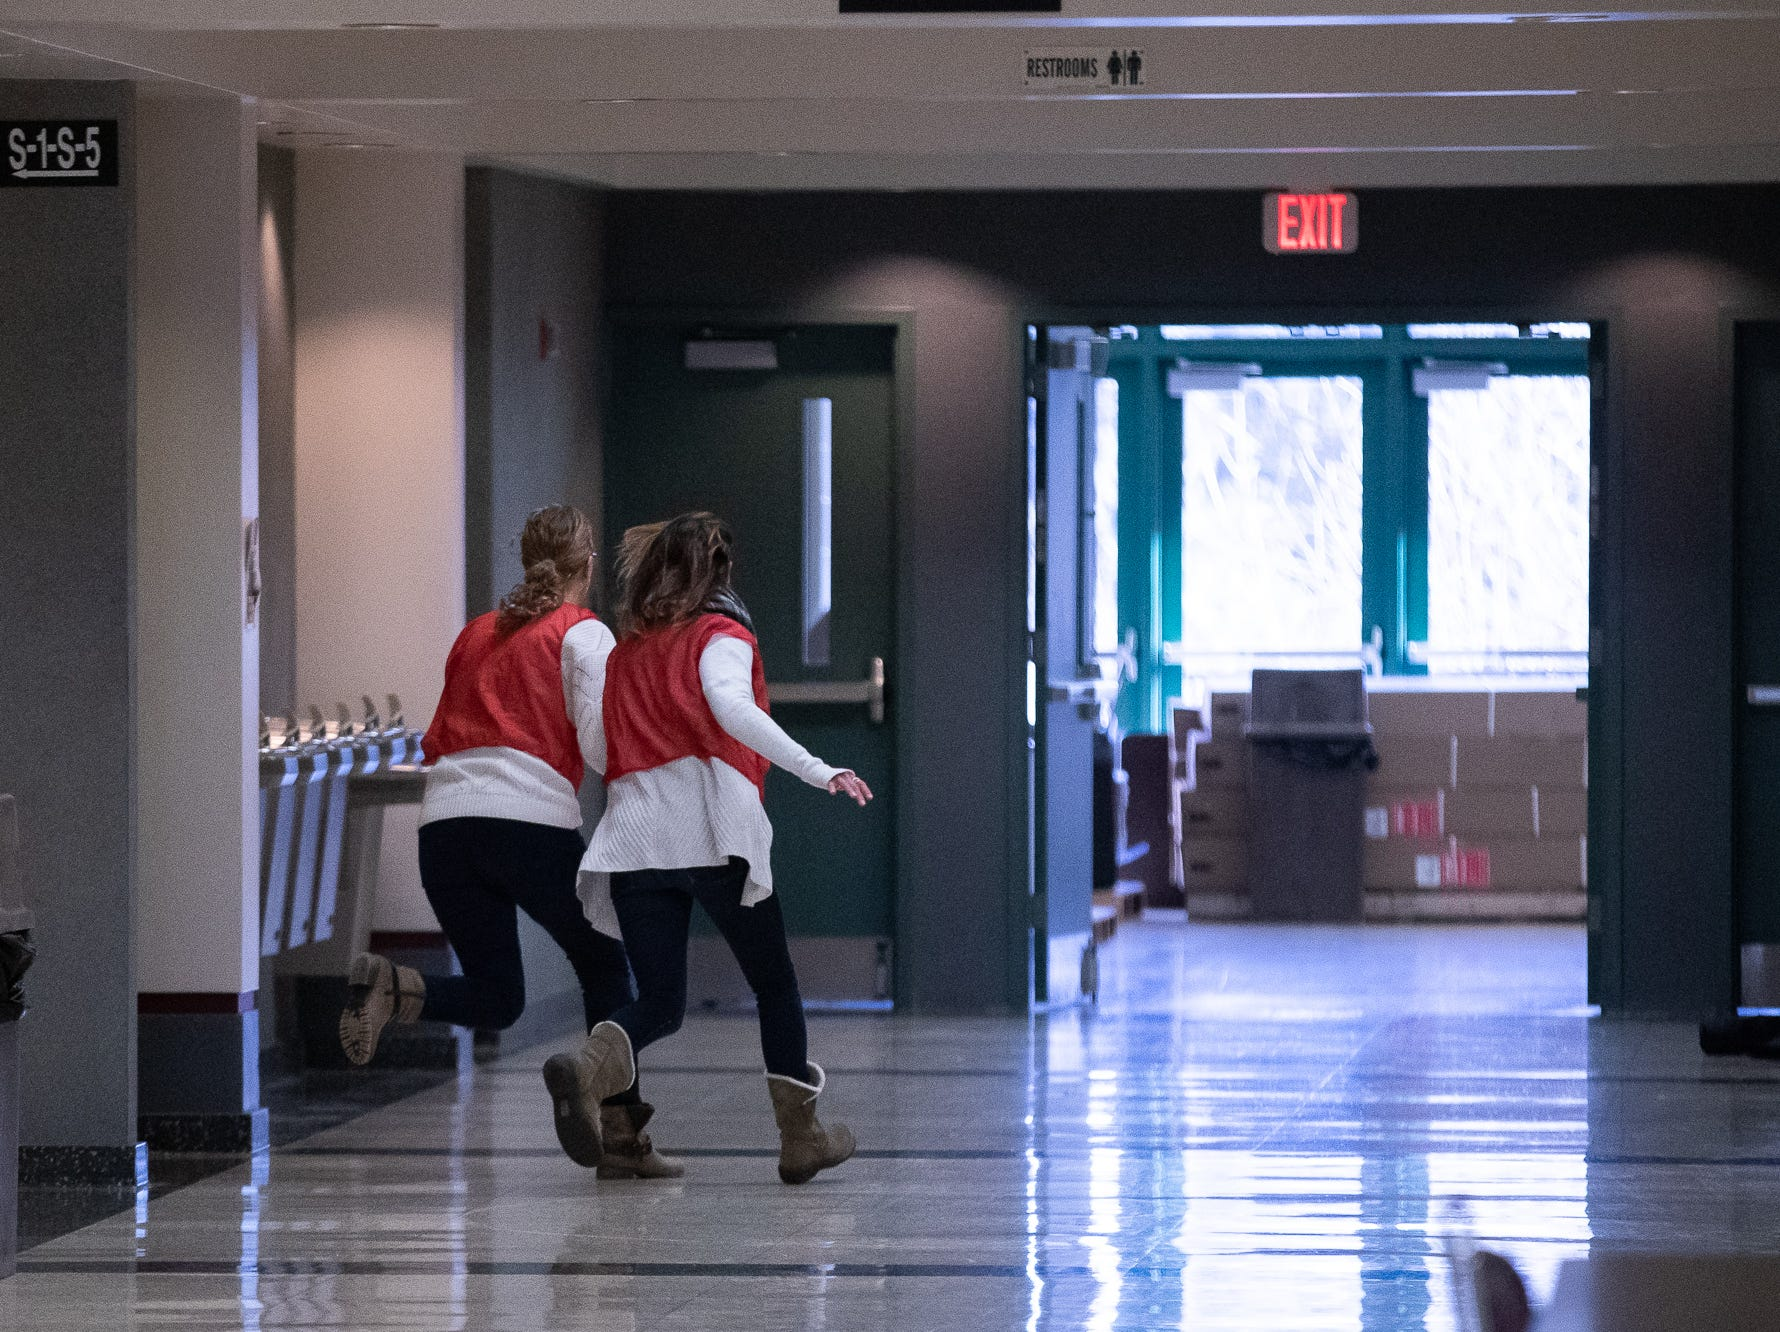 School staff run for cover while they take part in an active shooter drill at South Western High School, Monday, Jan. 21, 2019, in Penn Township. The drill simulated multiple scenarios involving an active shooter, allowing school security and local law enforcement agencies a hands-on opportunity to drill on engaging an active shooter while also giving school staff experience with how real world scenarios could unfold.